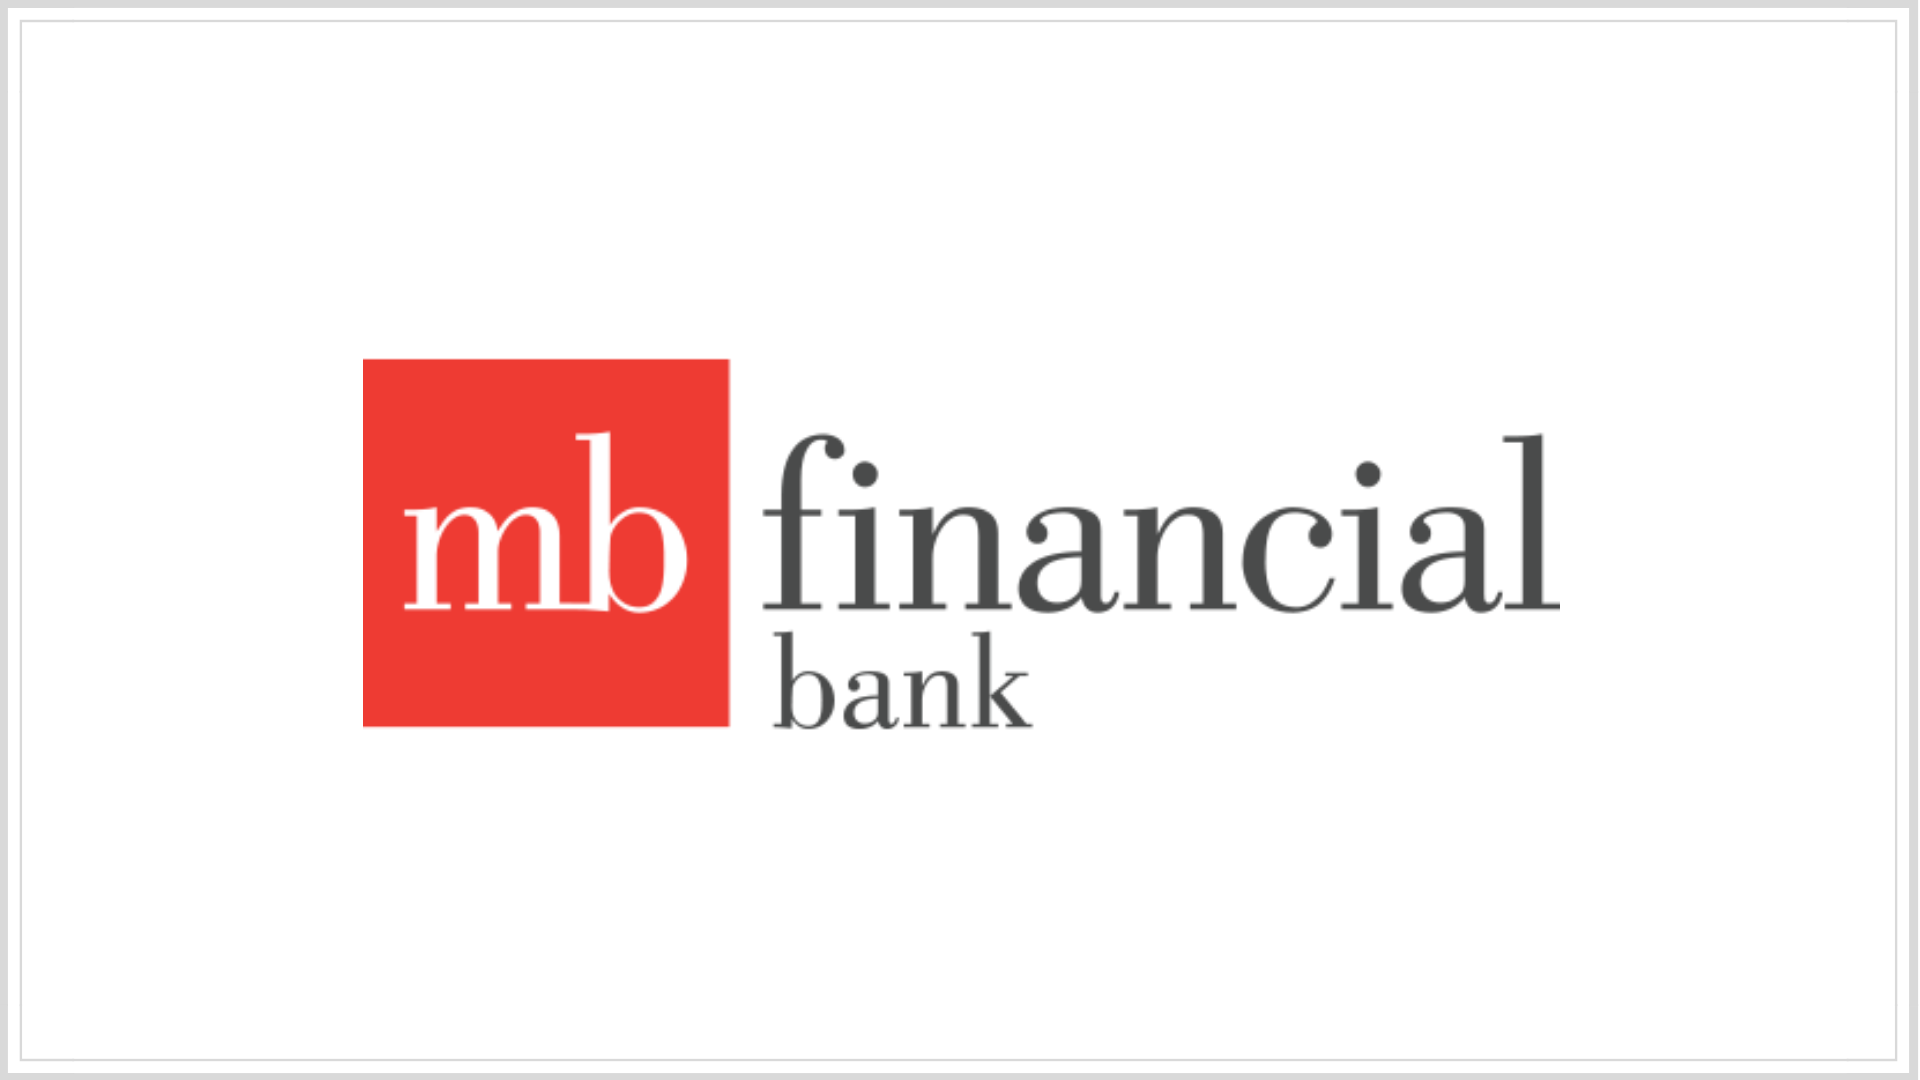 Chloe Capital | MB Financial Bank